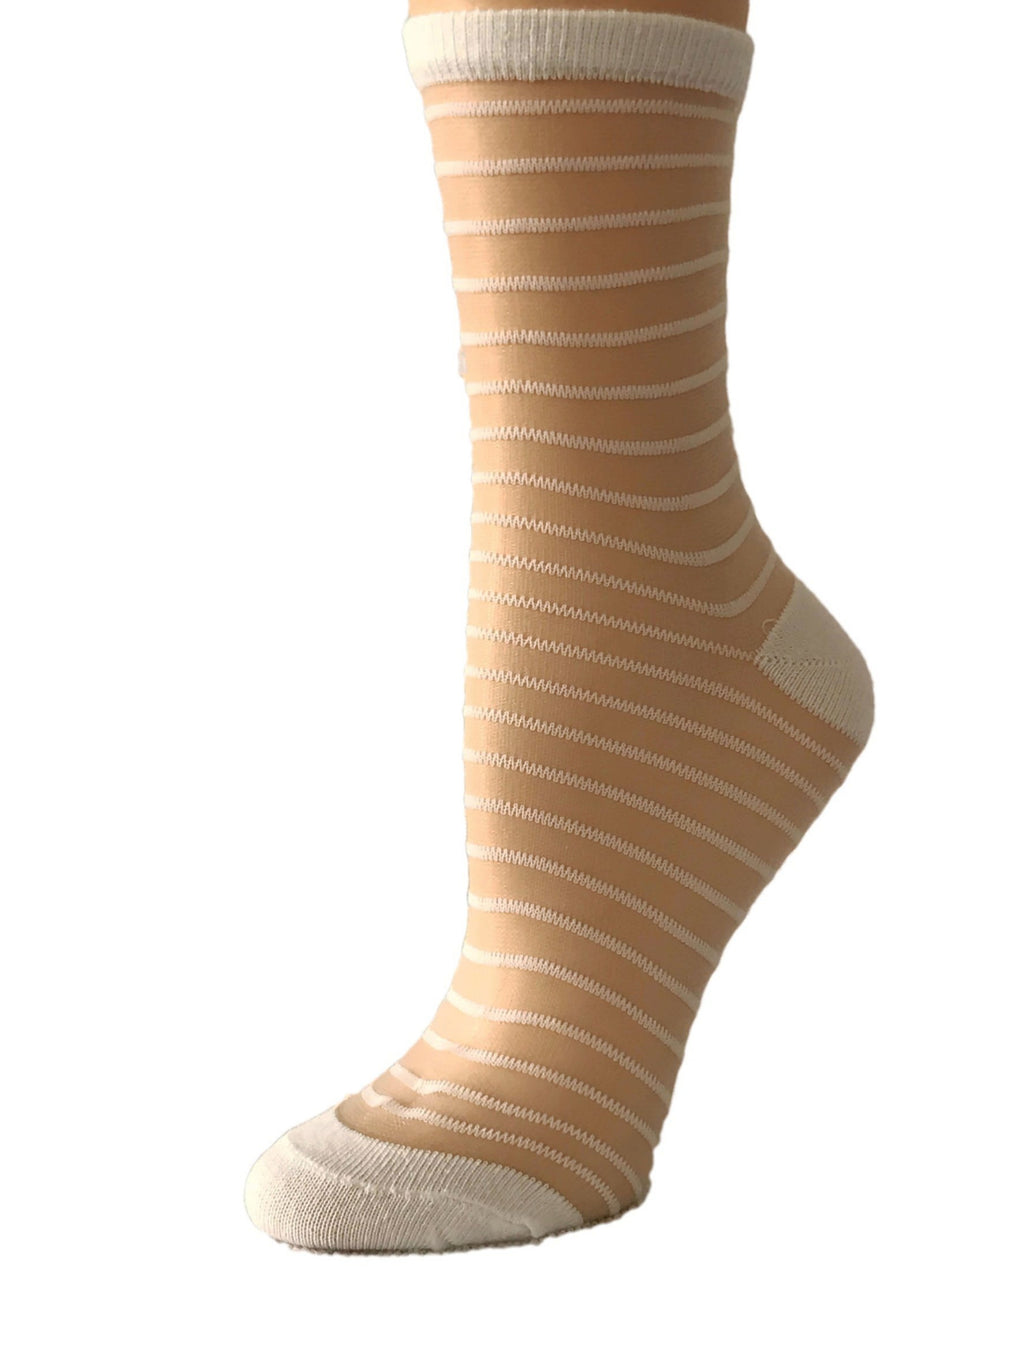 White Striped Sheer Socks - Global Trendz Fashion®